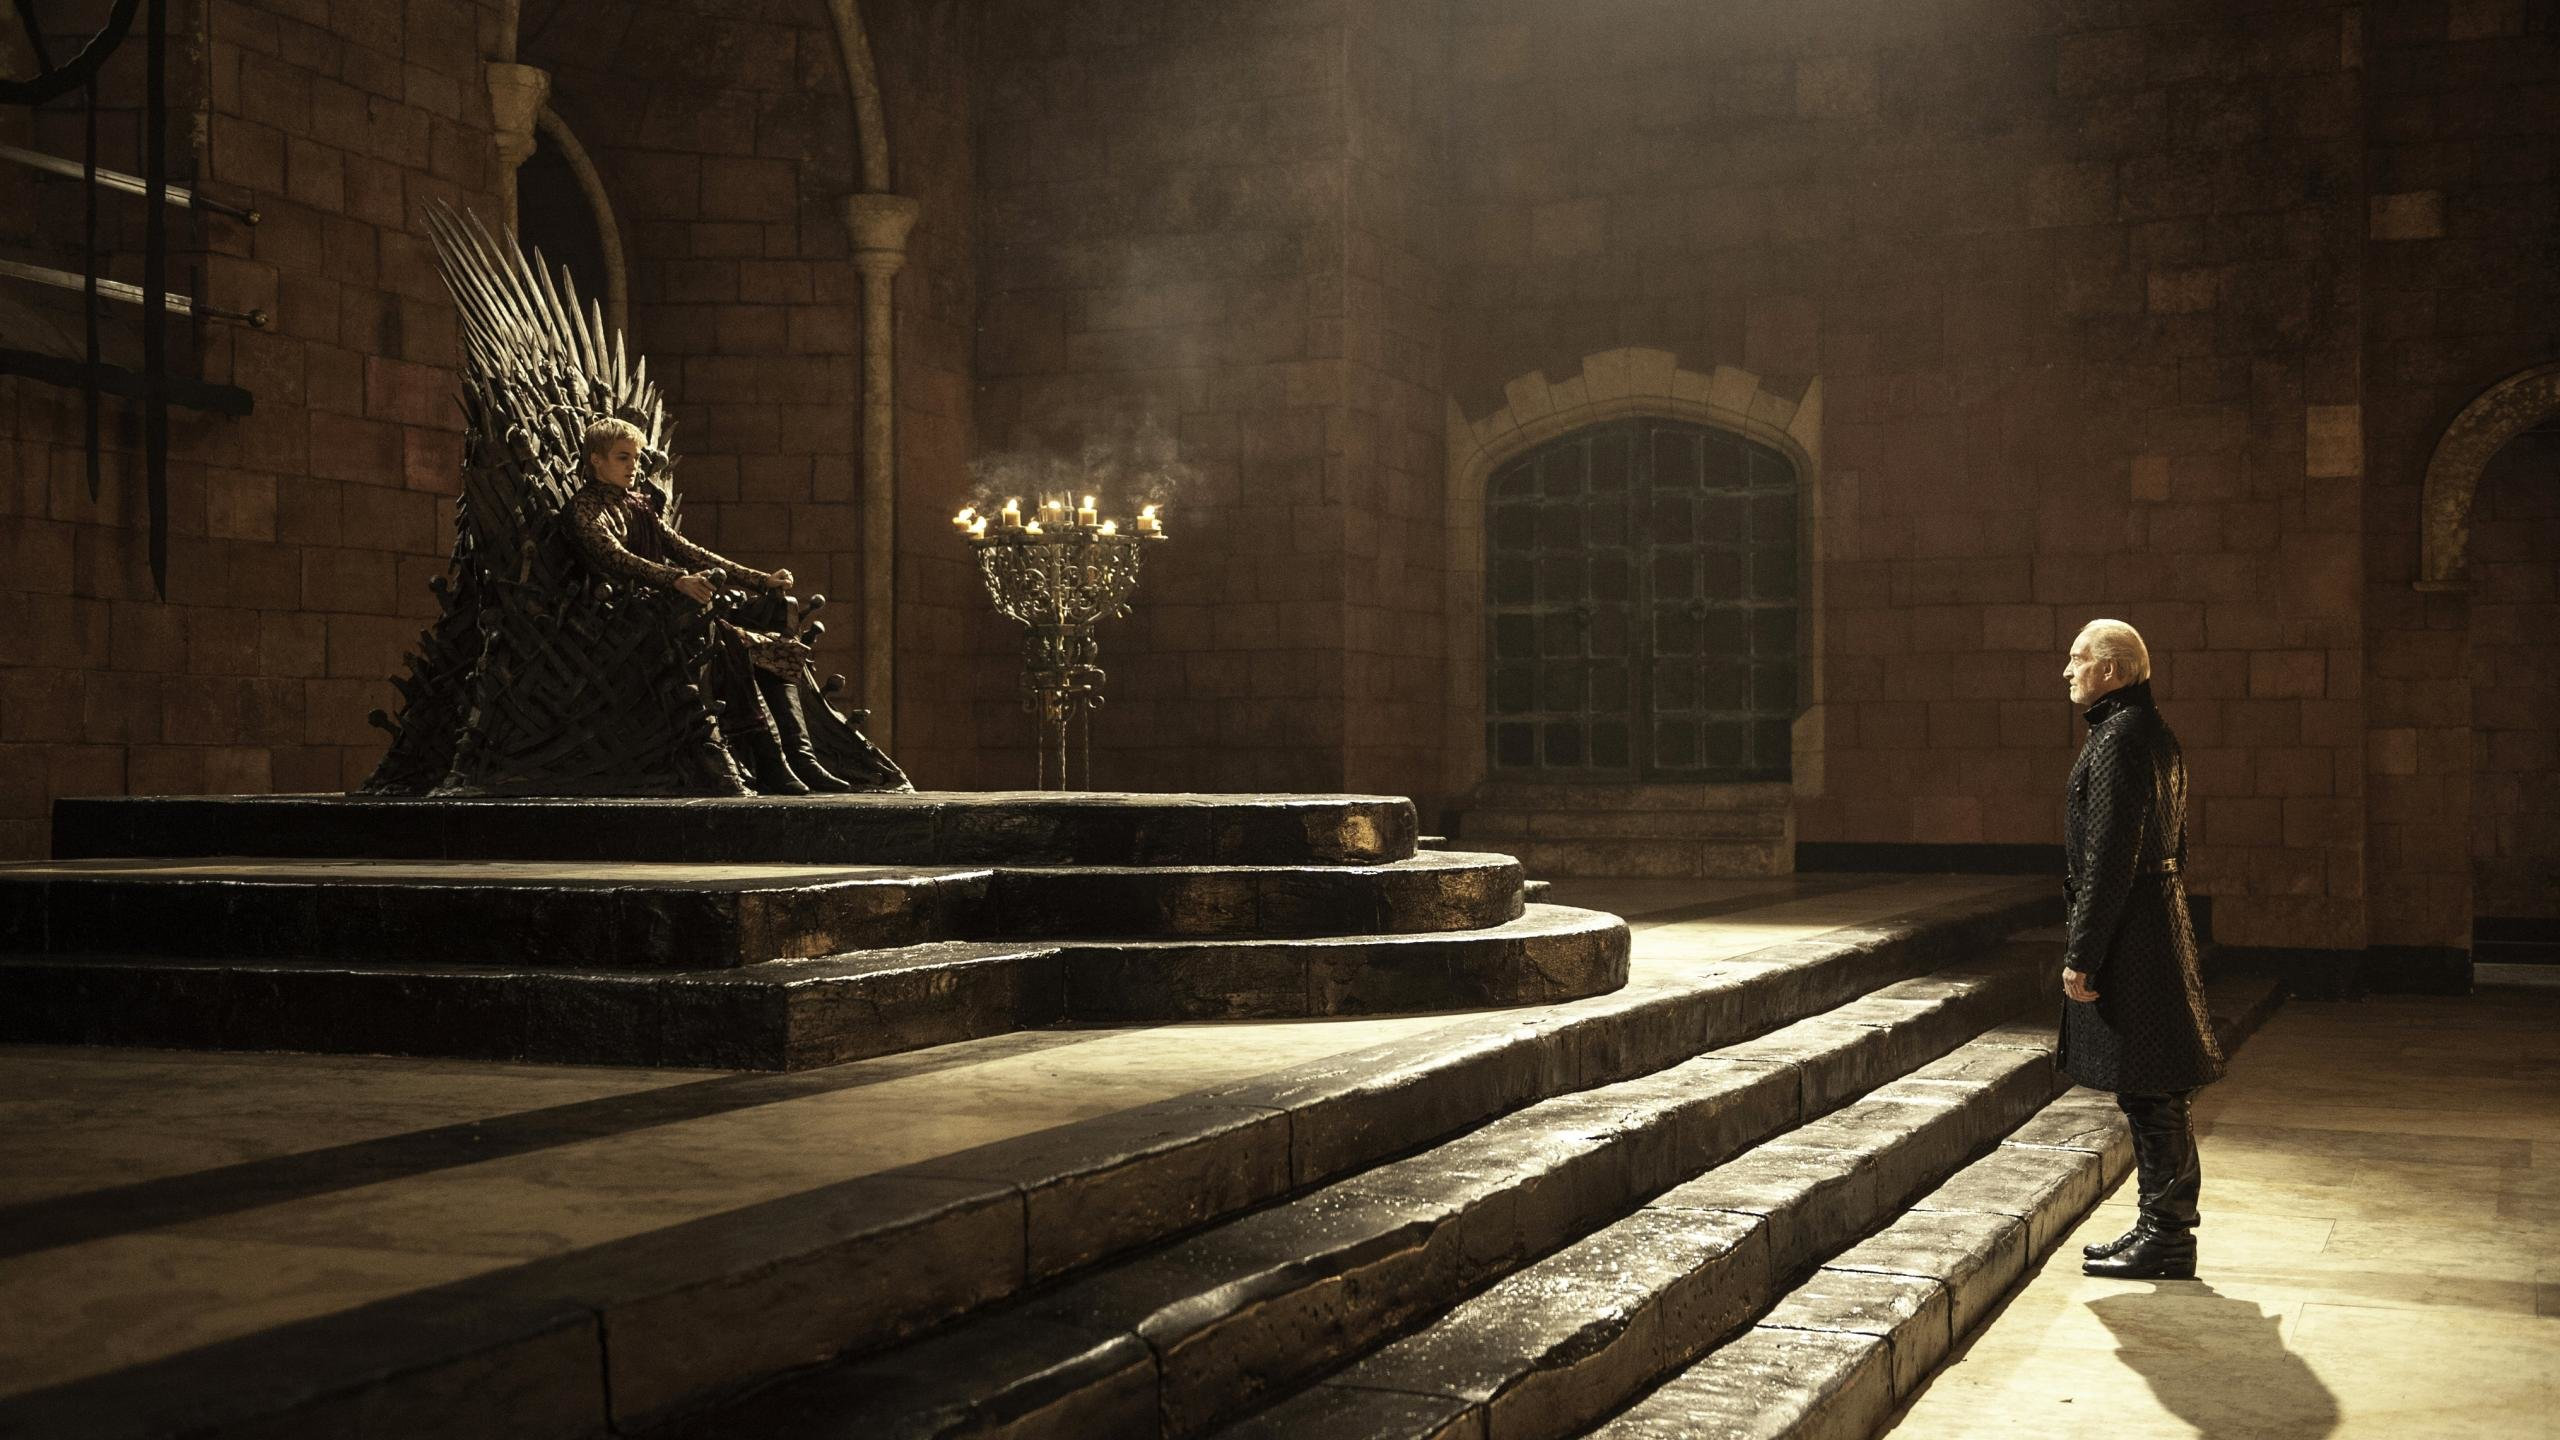 Awesome Game Of Thrones Free Wallpaper Id - Iron Throne King's Landing - HD Wallpaper